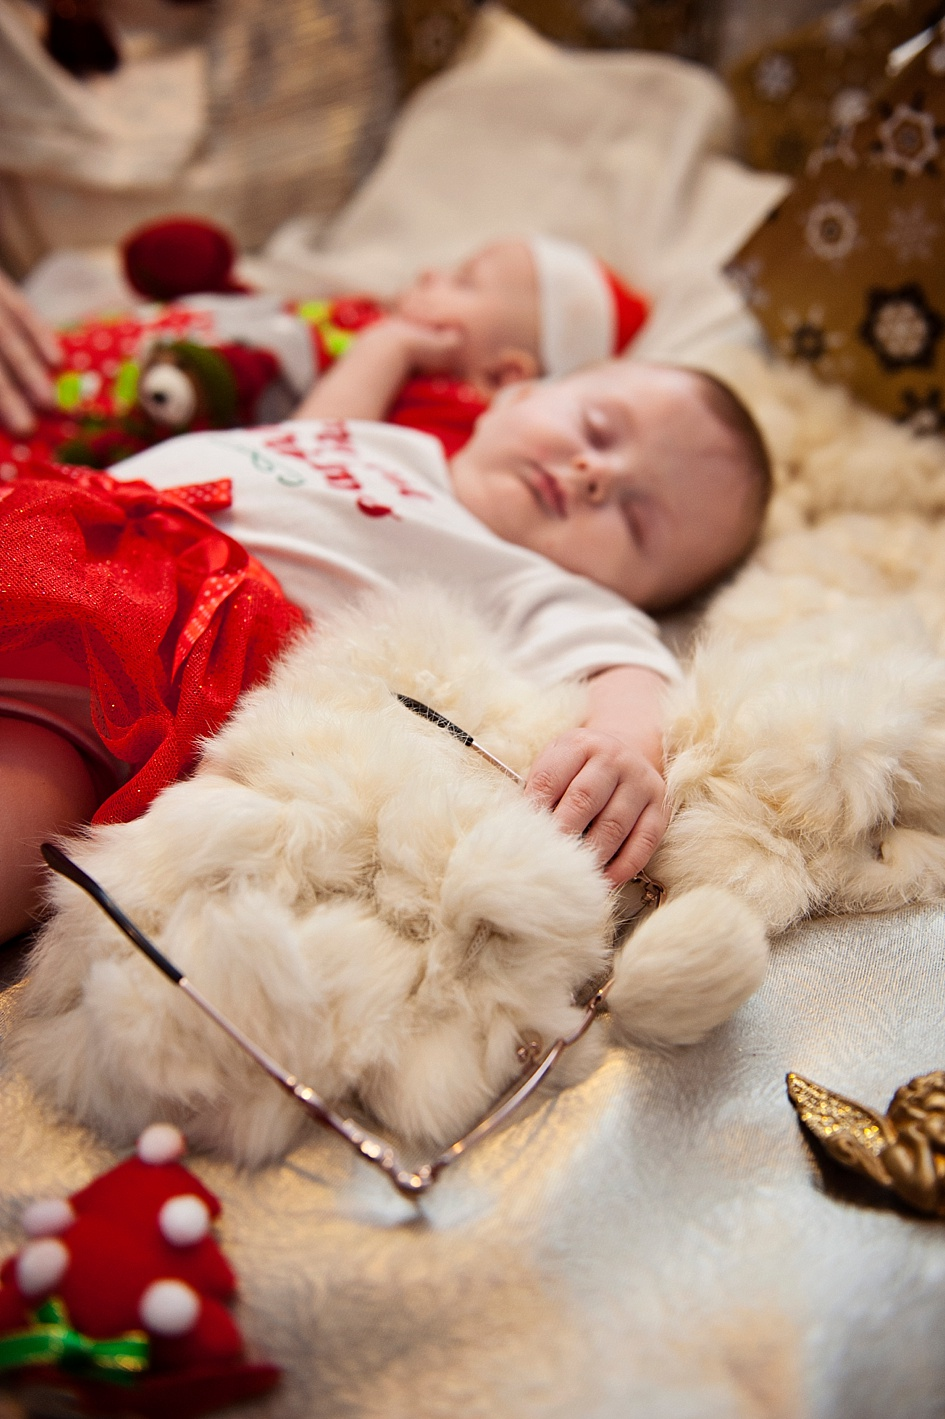 creative-festive-season-baby-shoot.jpg